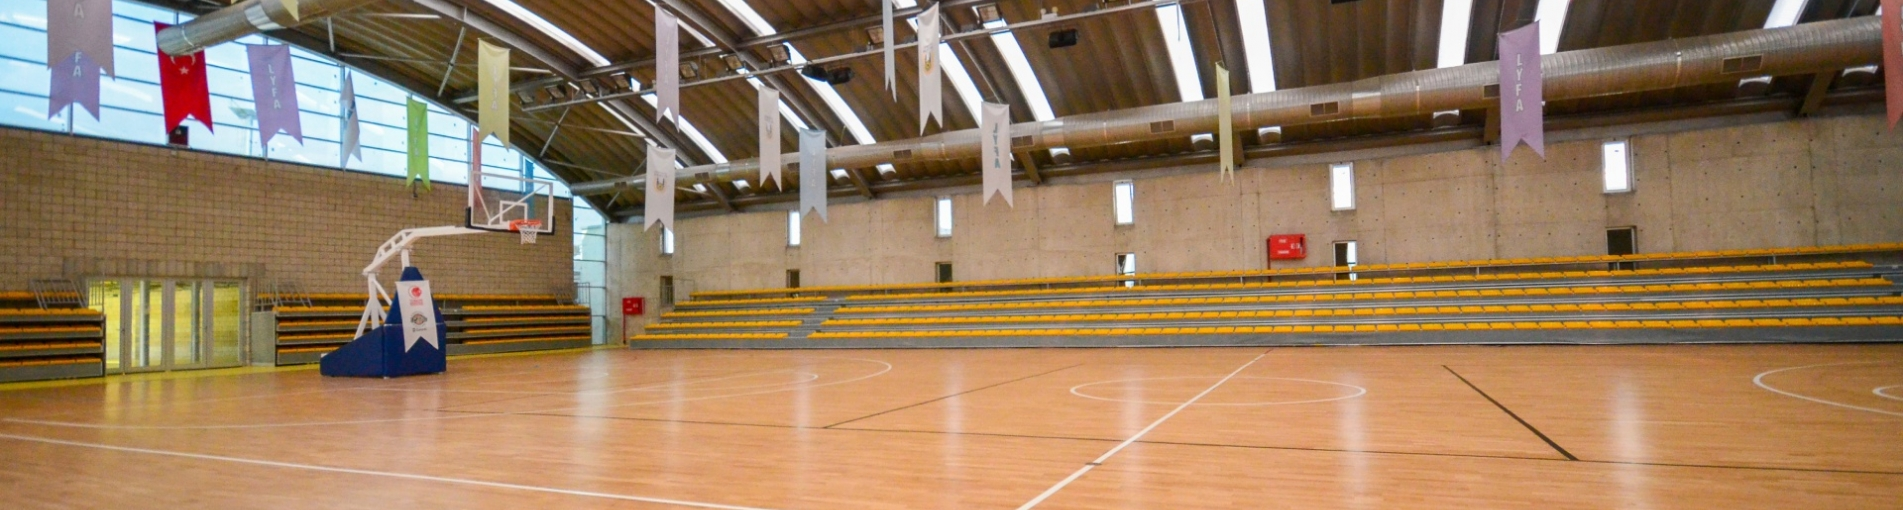 For Indoor Sports Hall Construction Cost